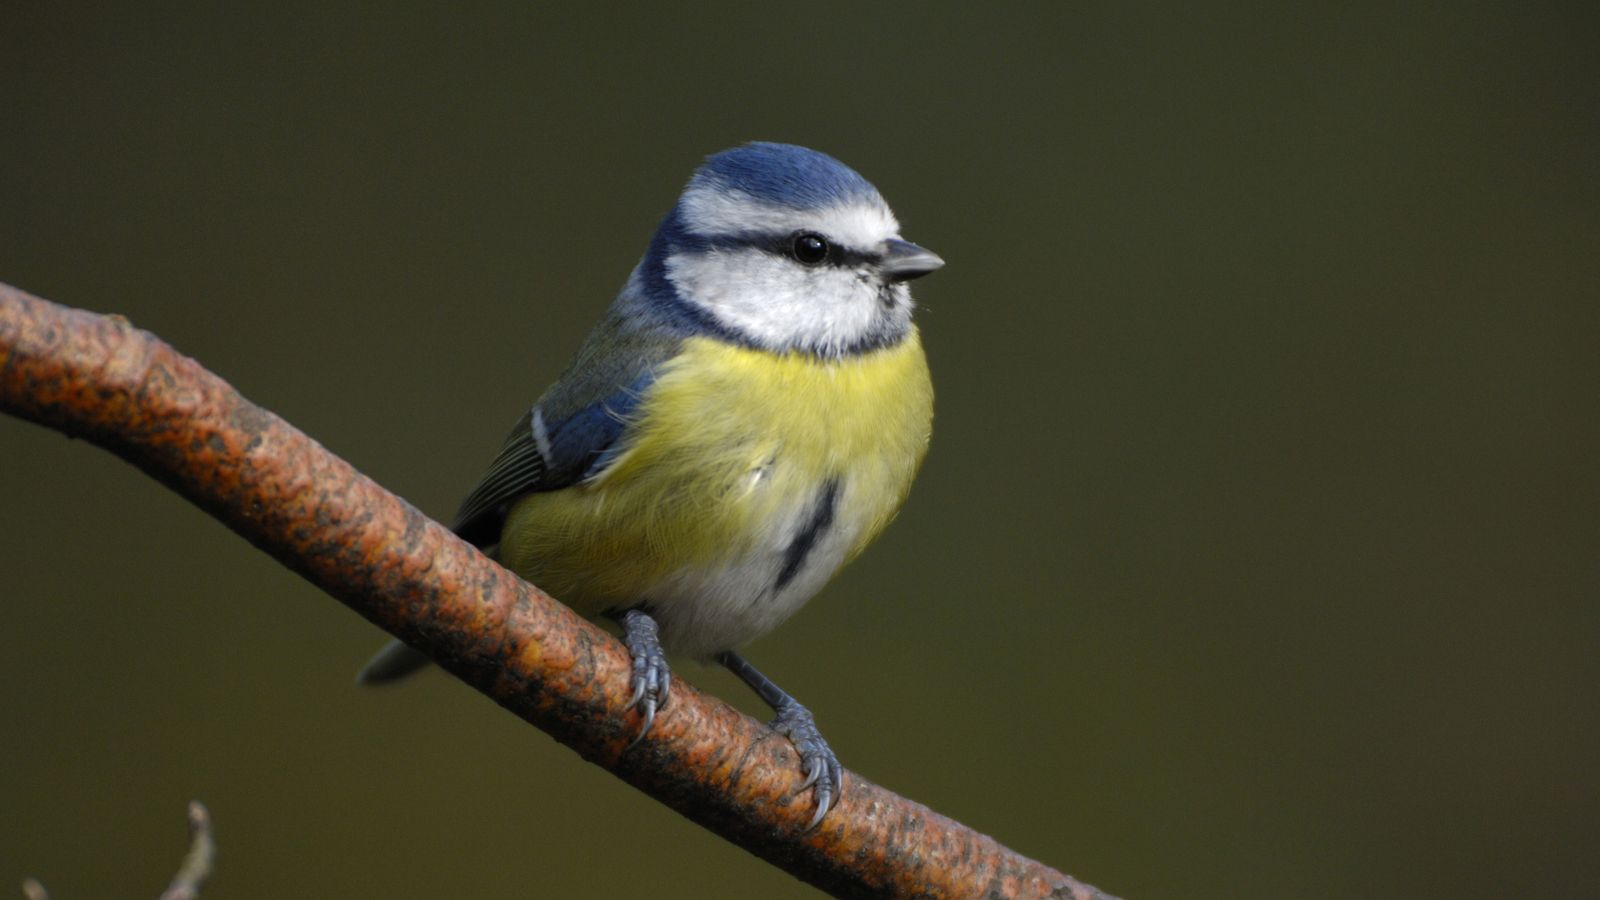 The blue tit is a regular garden visitor and can be seen all year round.